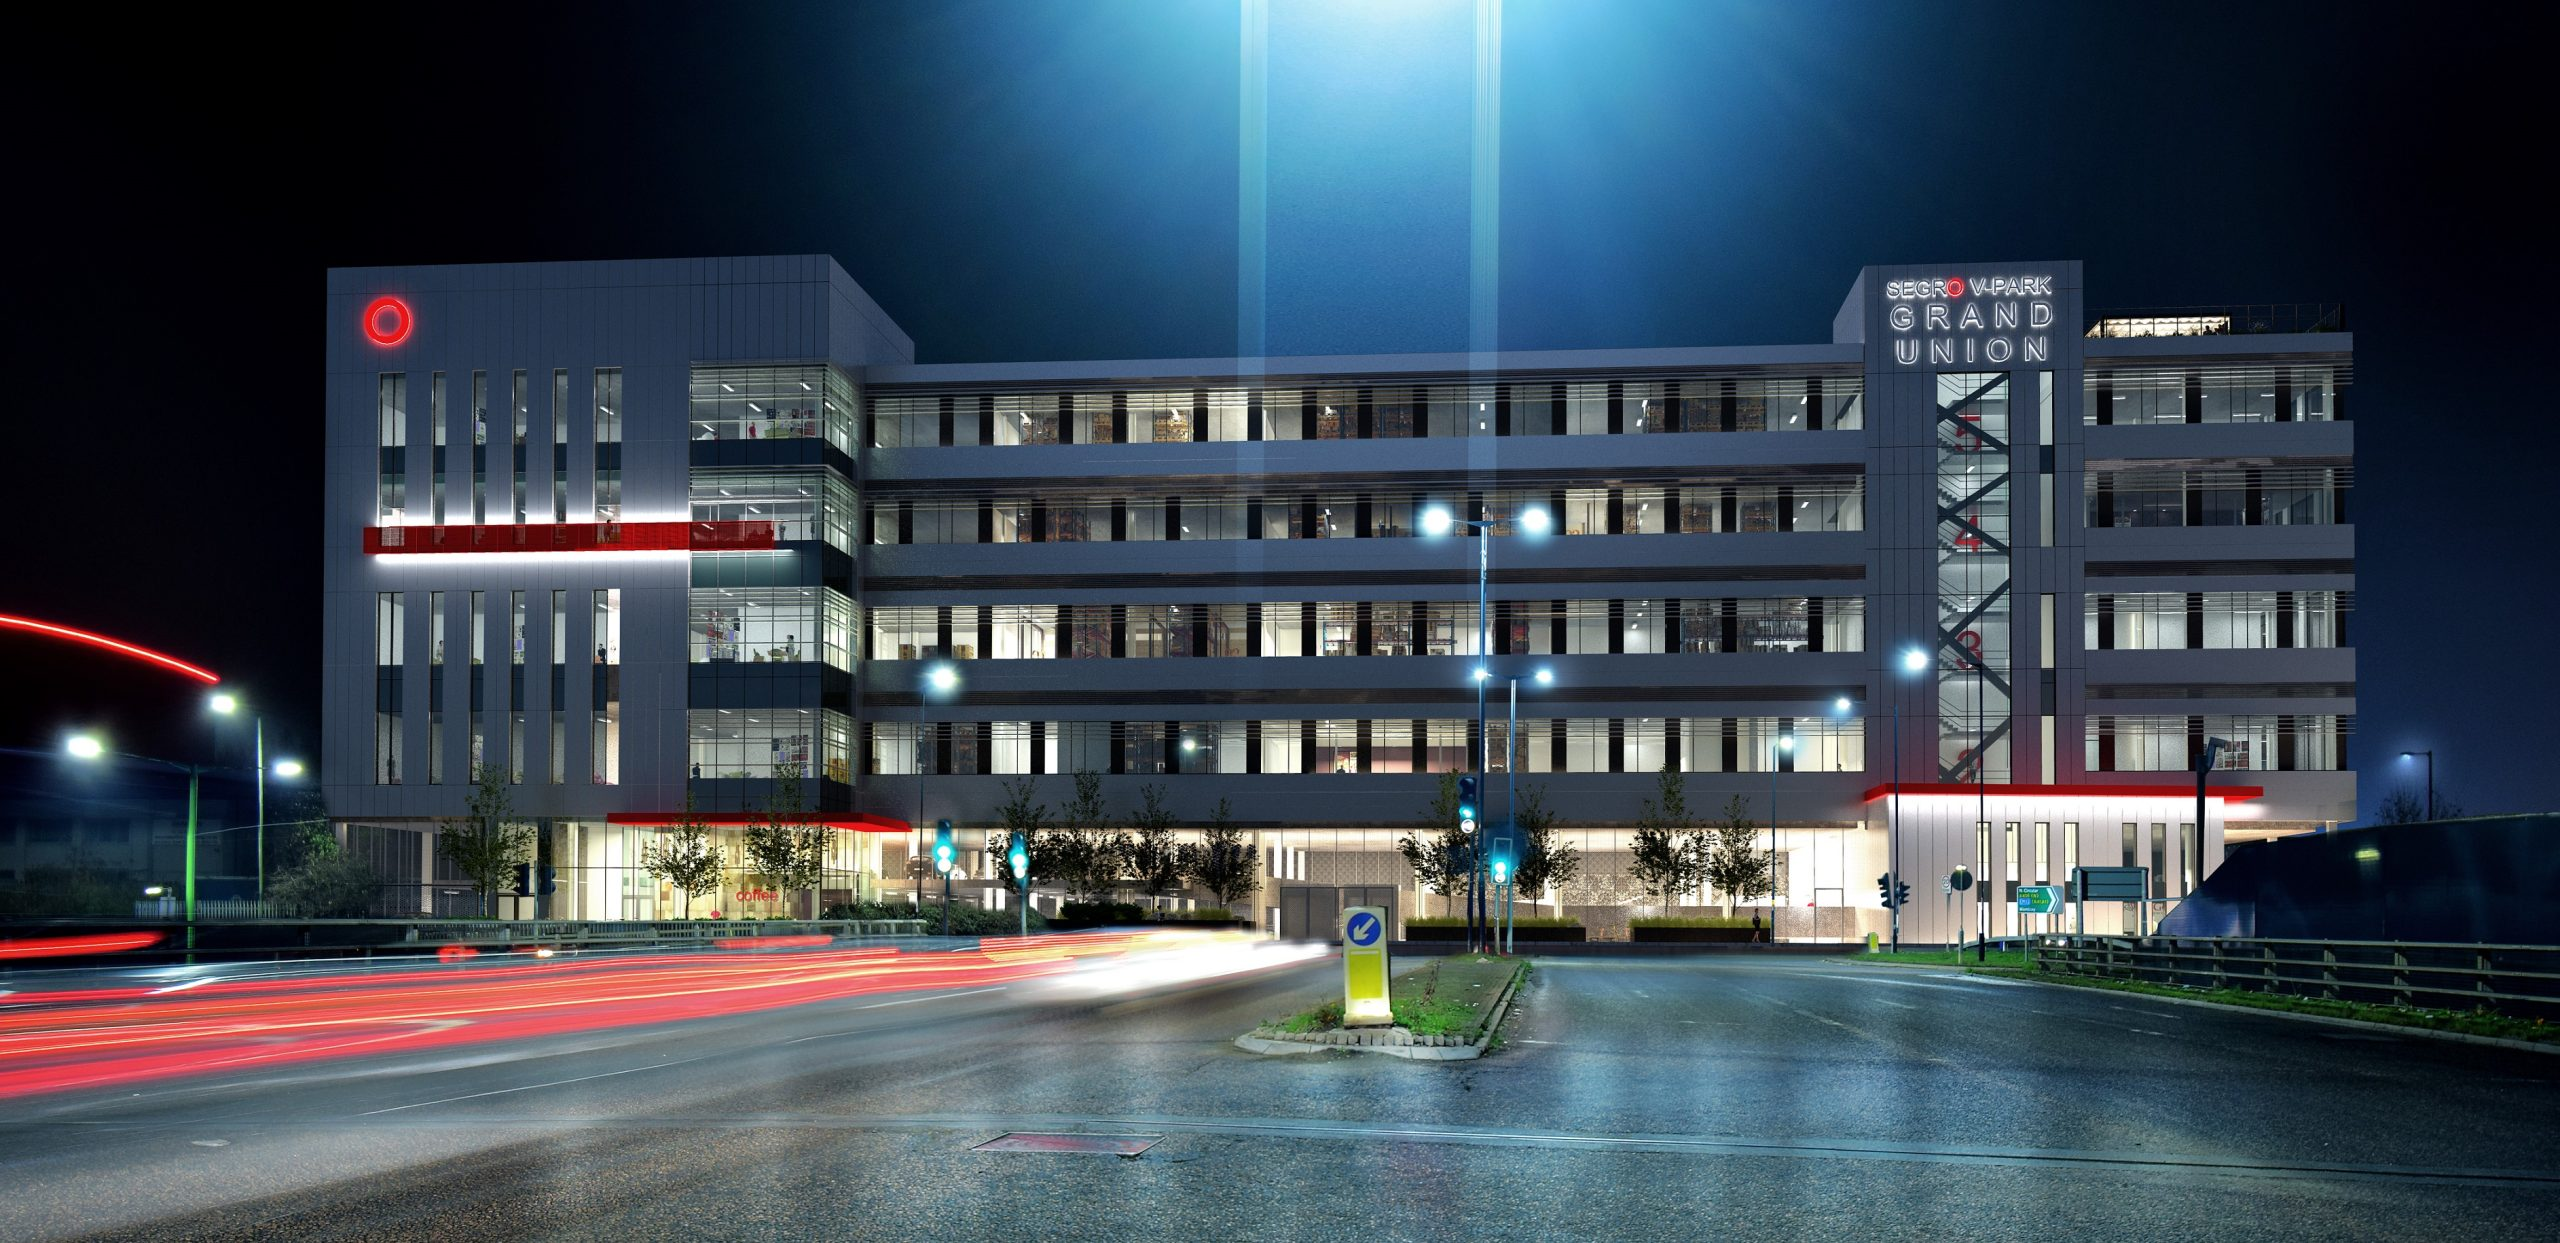 St George and SEGRO enter JV to deliver their first UK multi-storey industrial development in the London Borough of Brent